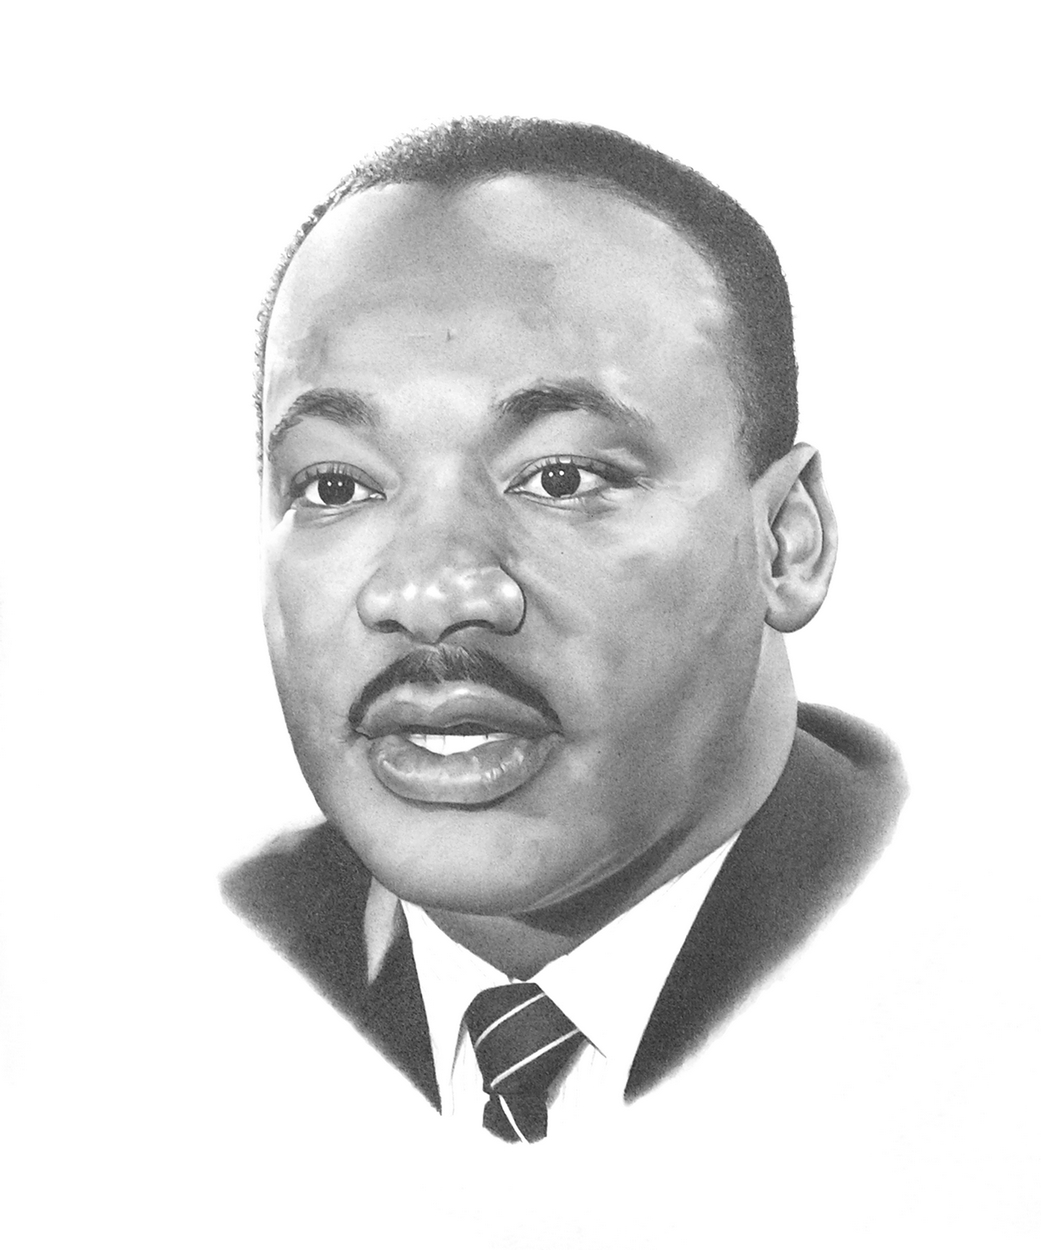 martin luther king 99 thesis